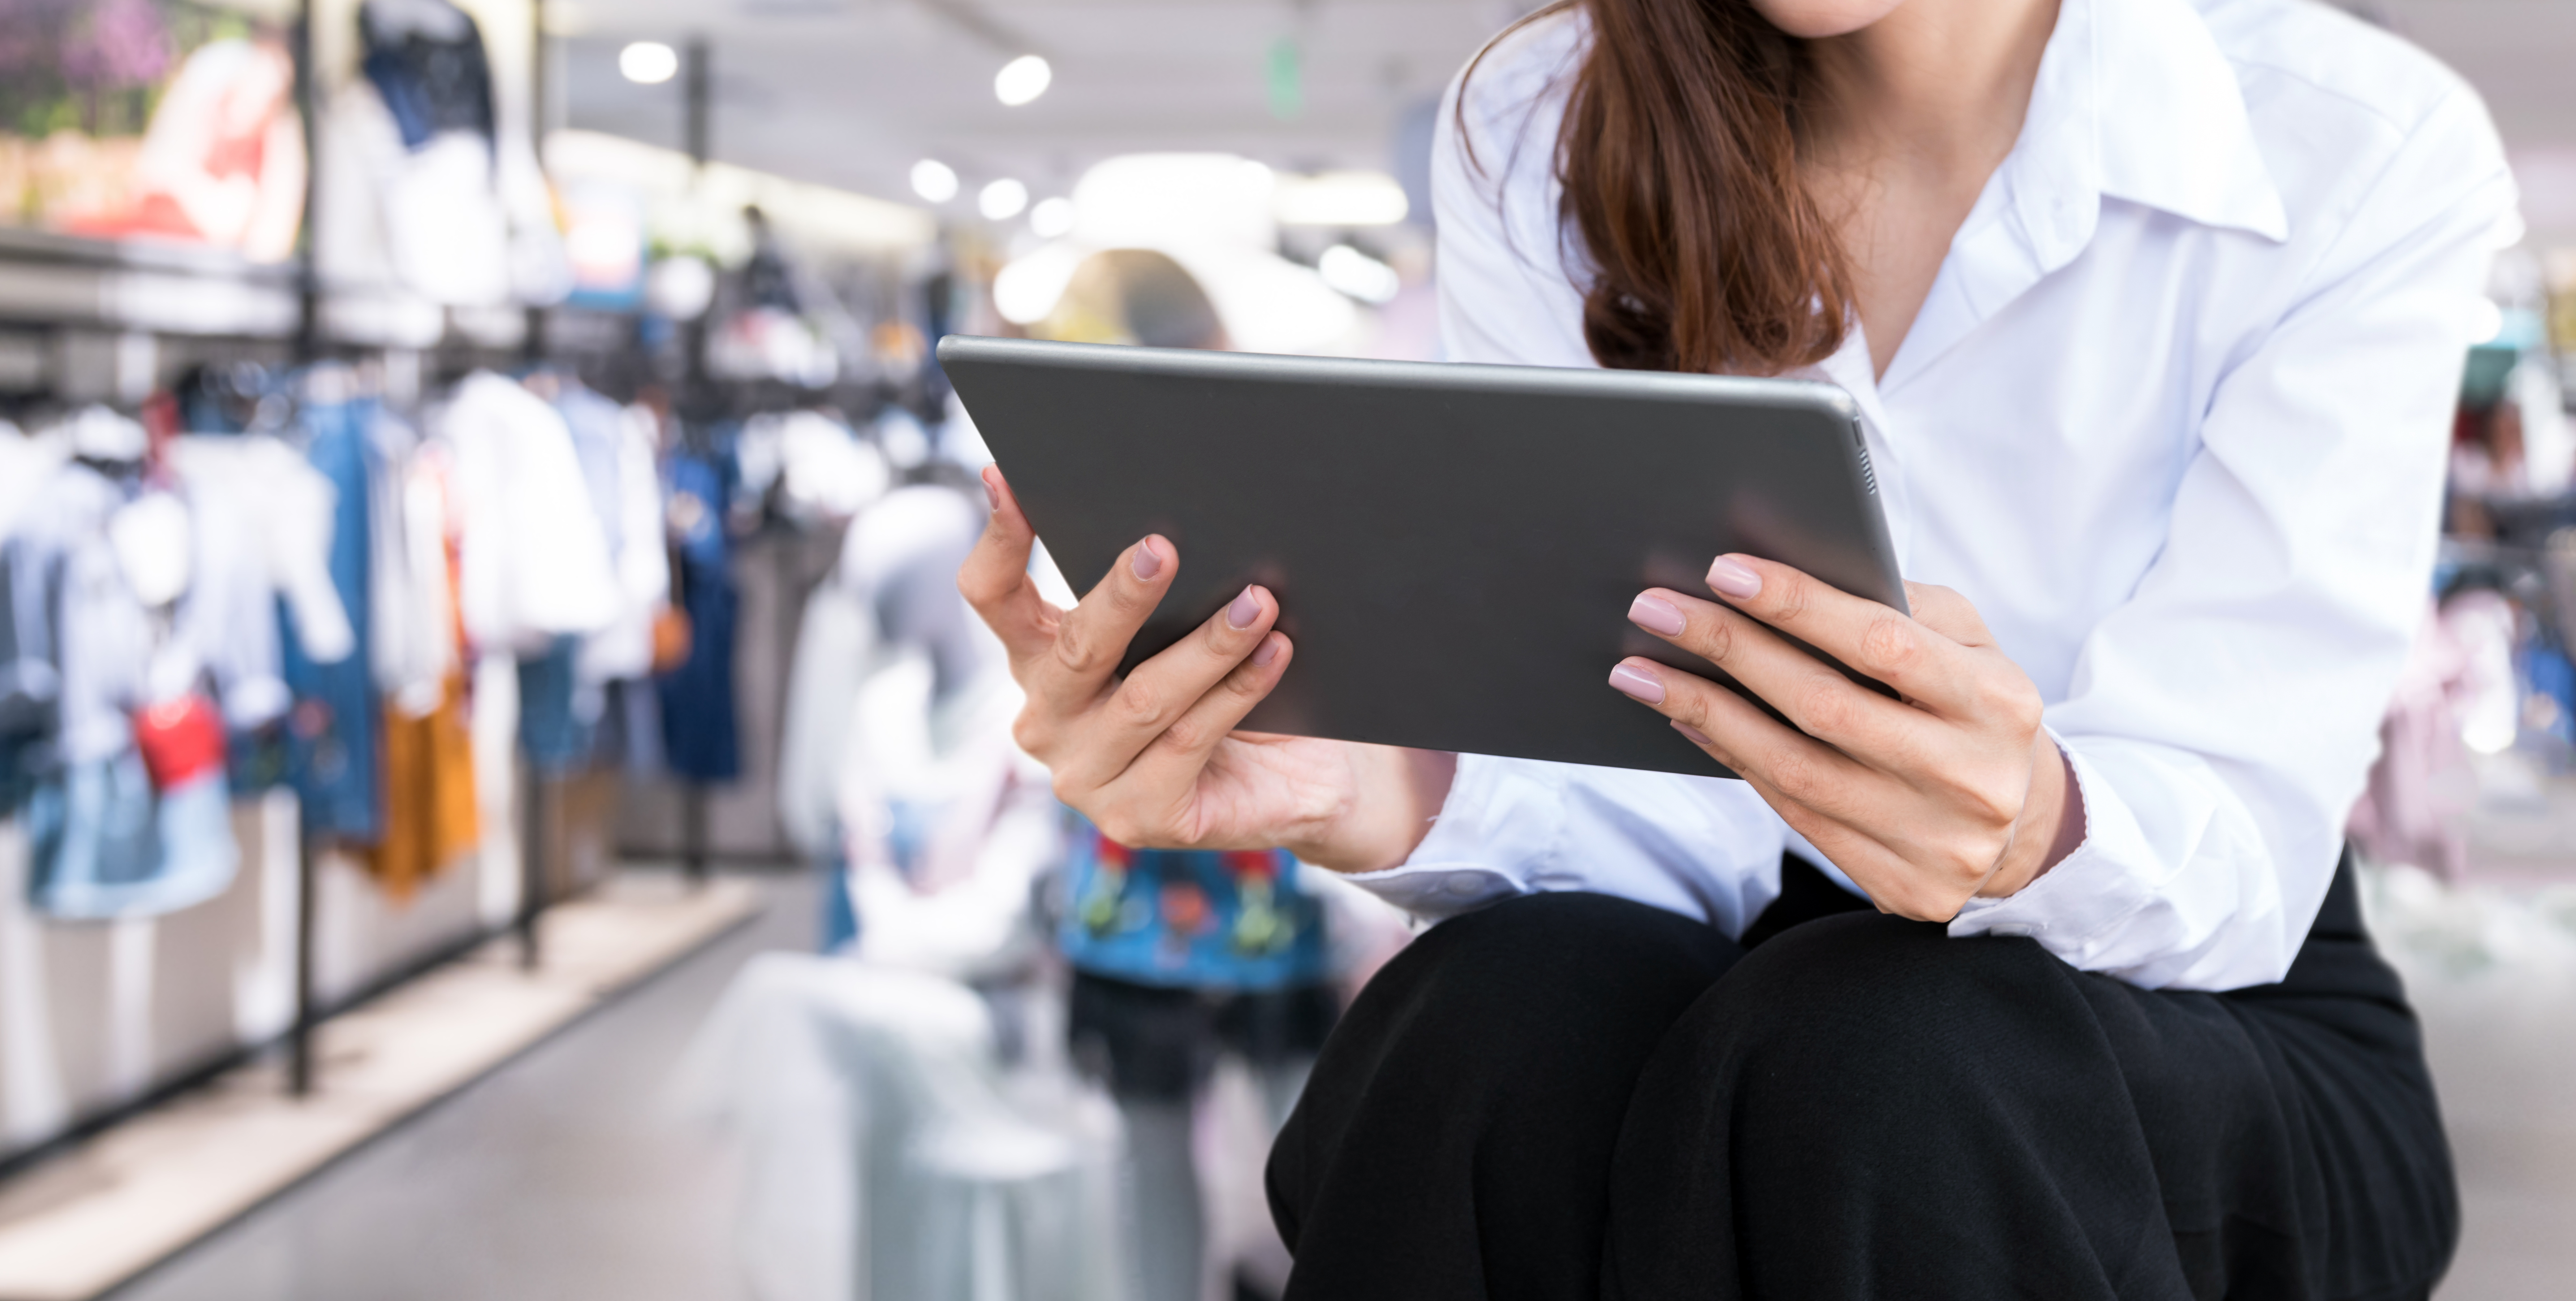 Welcome to the Agile Retail Era: Mission-Critical Ways to Strengthen Your Digital Acceleration Footing